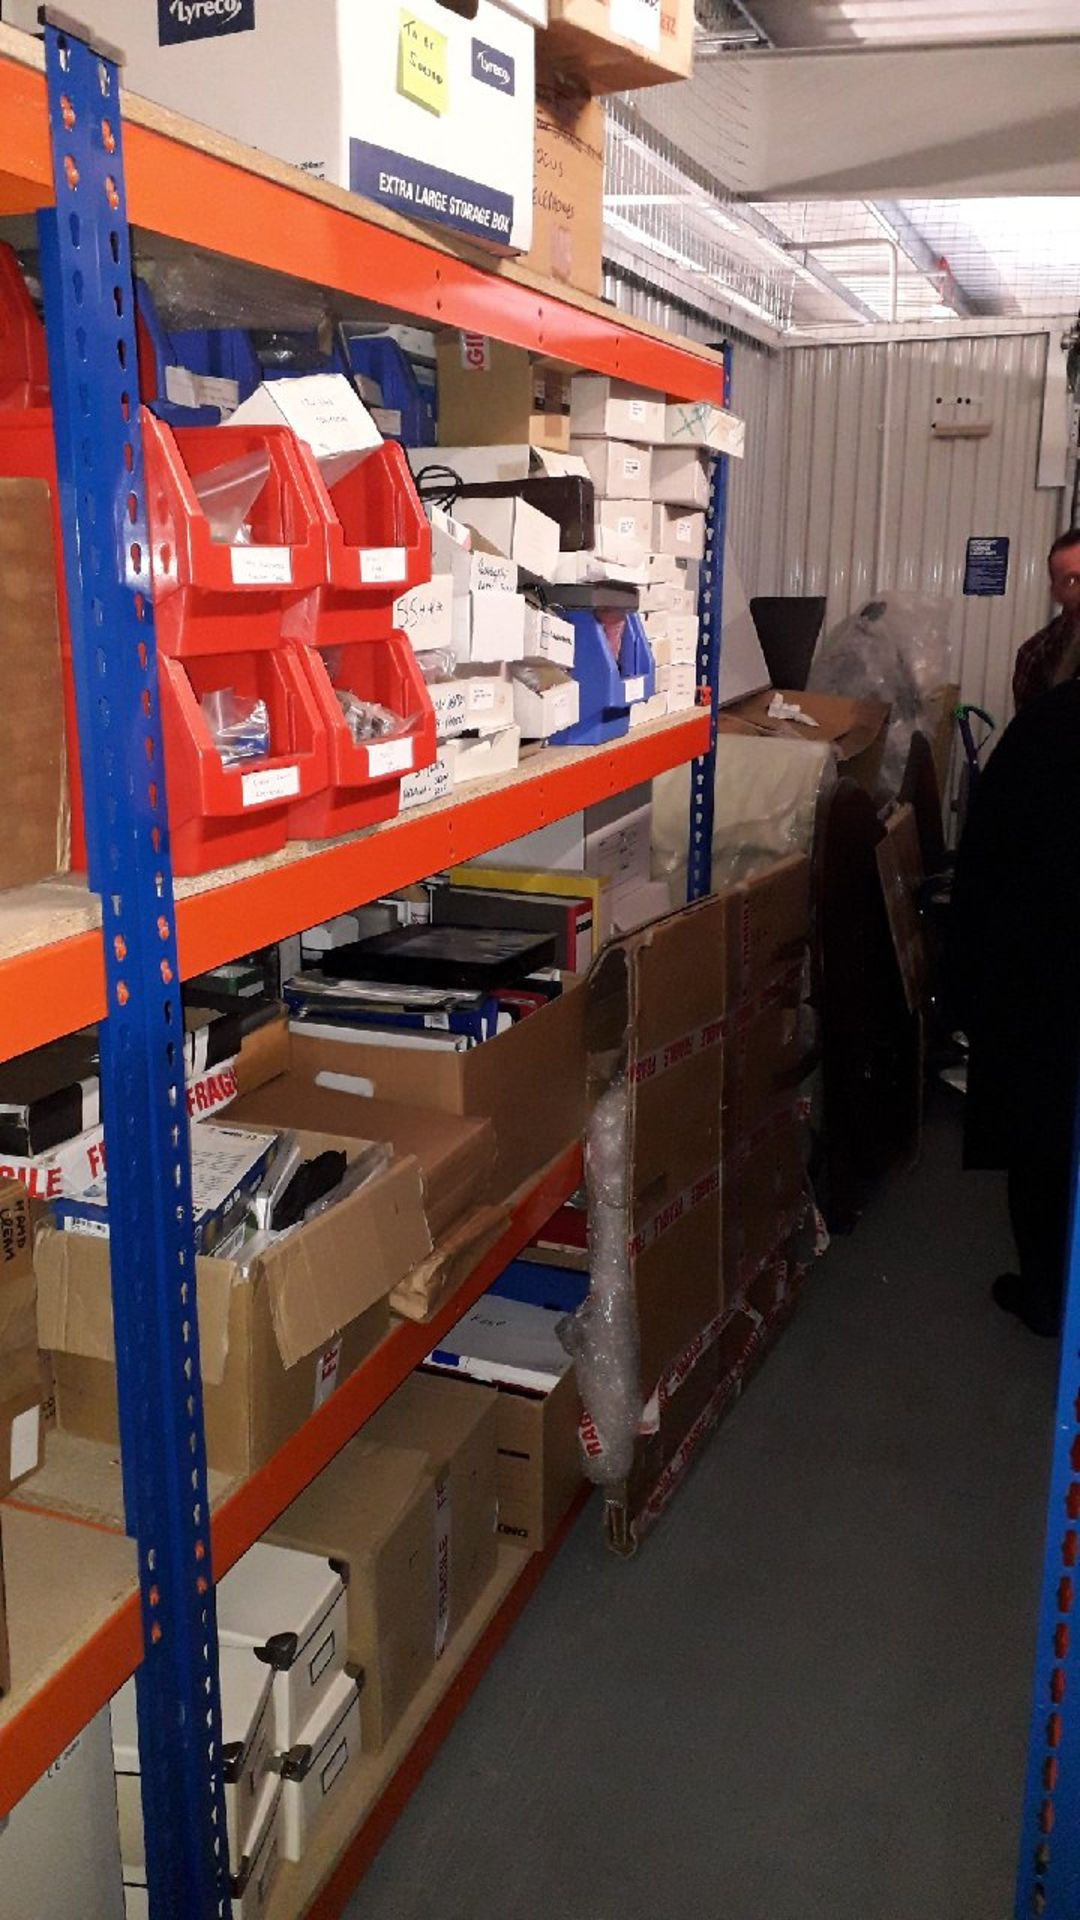 Stock of medical consumables and equipment to incl - Image 8 of 23